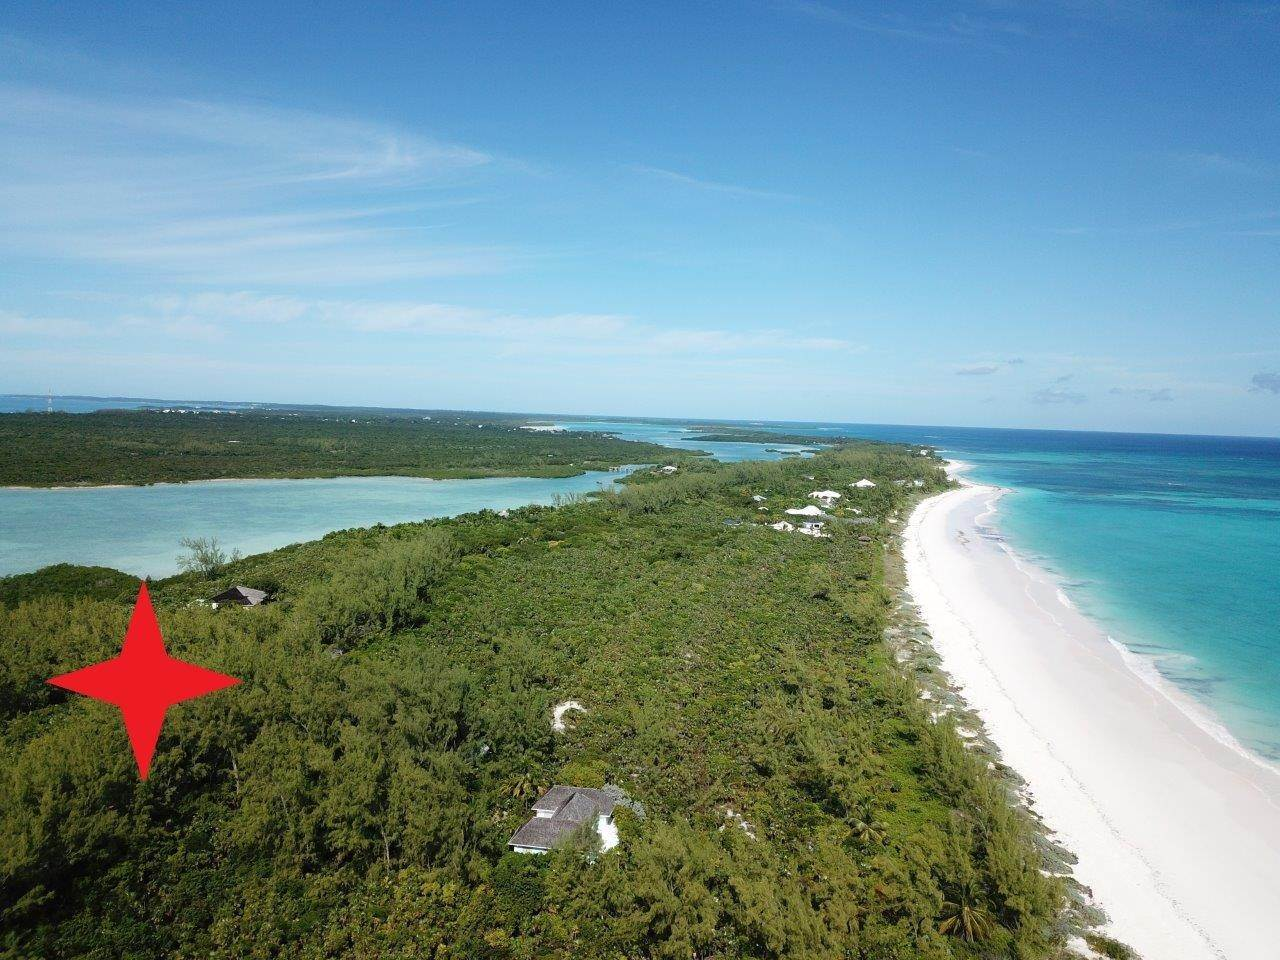 Land for Sale at Windermere Island Lot - almost one Acre for under 250K - MLS 39587 Windermere Island, Eleuthera, Bahamas